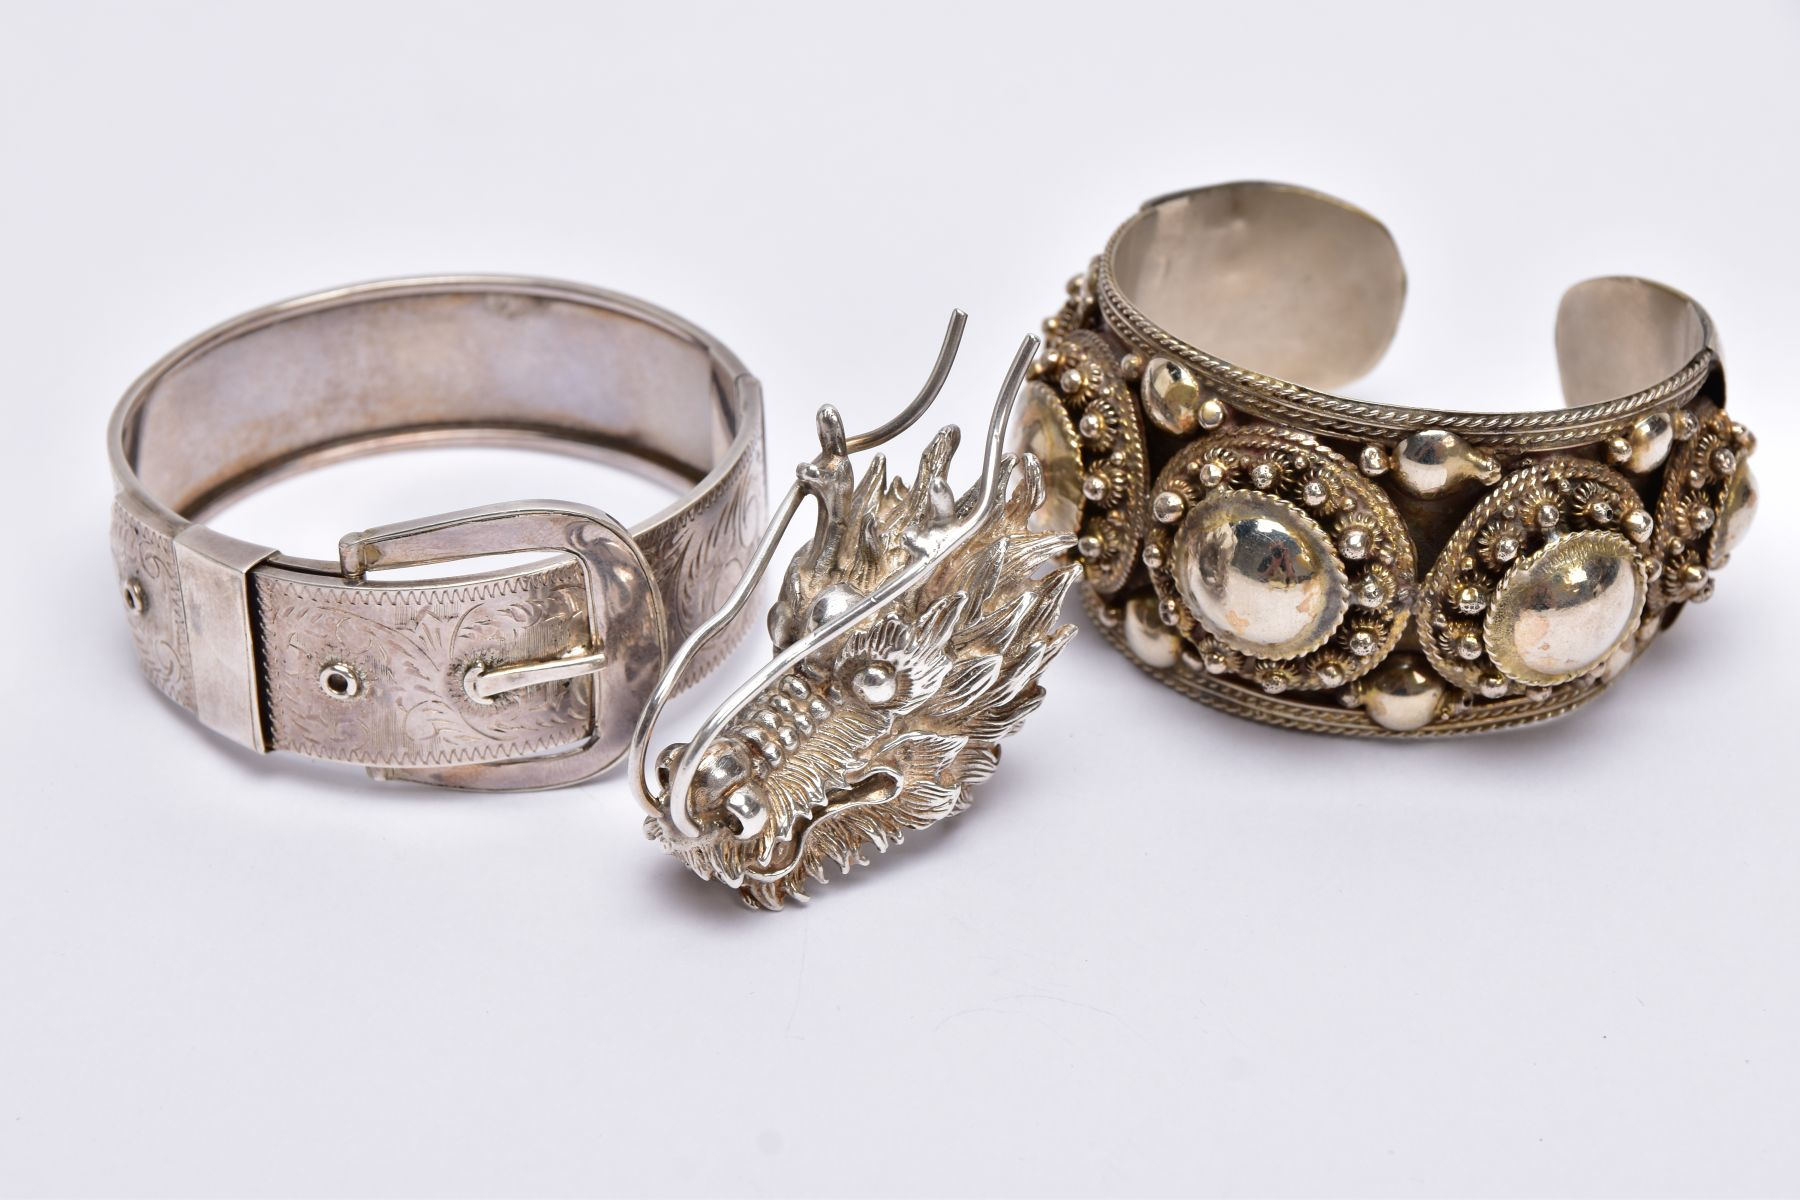 A WHITE METAL BANGLE, CUFF BANGLE AND A RING, the hinged bangle of a belt and buckle design, foliate